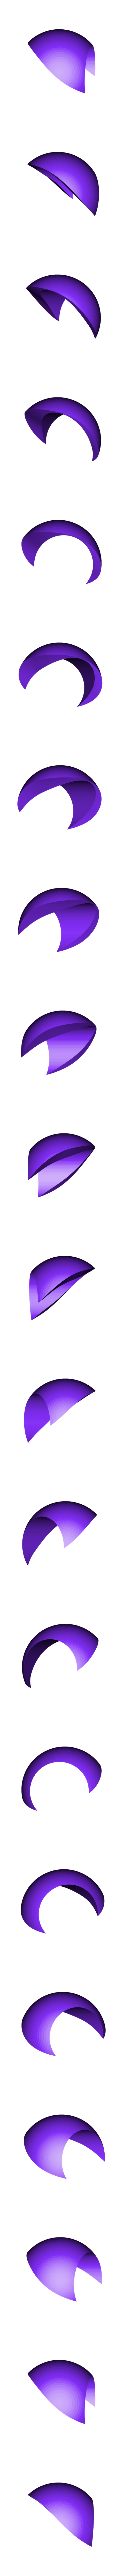 DoryWhiteEye1.STL Download free STL file Multi-Color Baby Dory • Object to 3D print, MosaicManufacturing